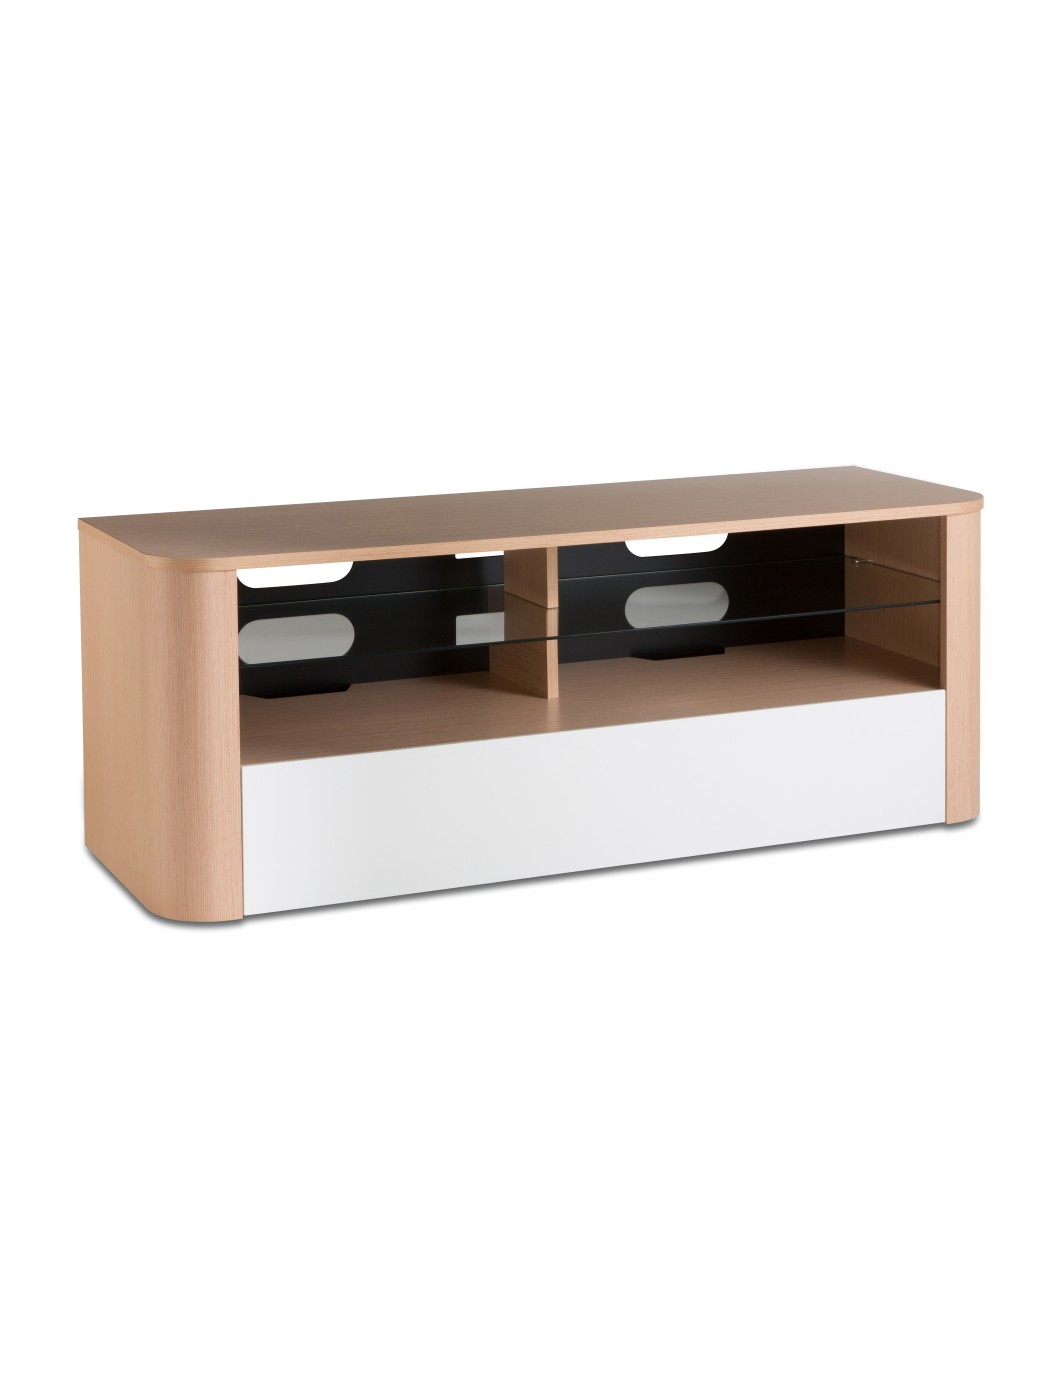 Alphason Hugo TV Stand ADH1260-WHI in Light Oak and White